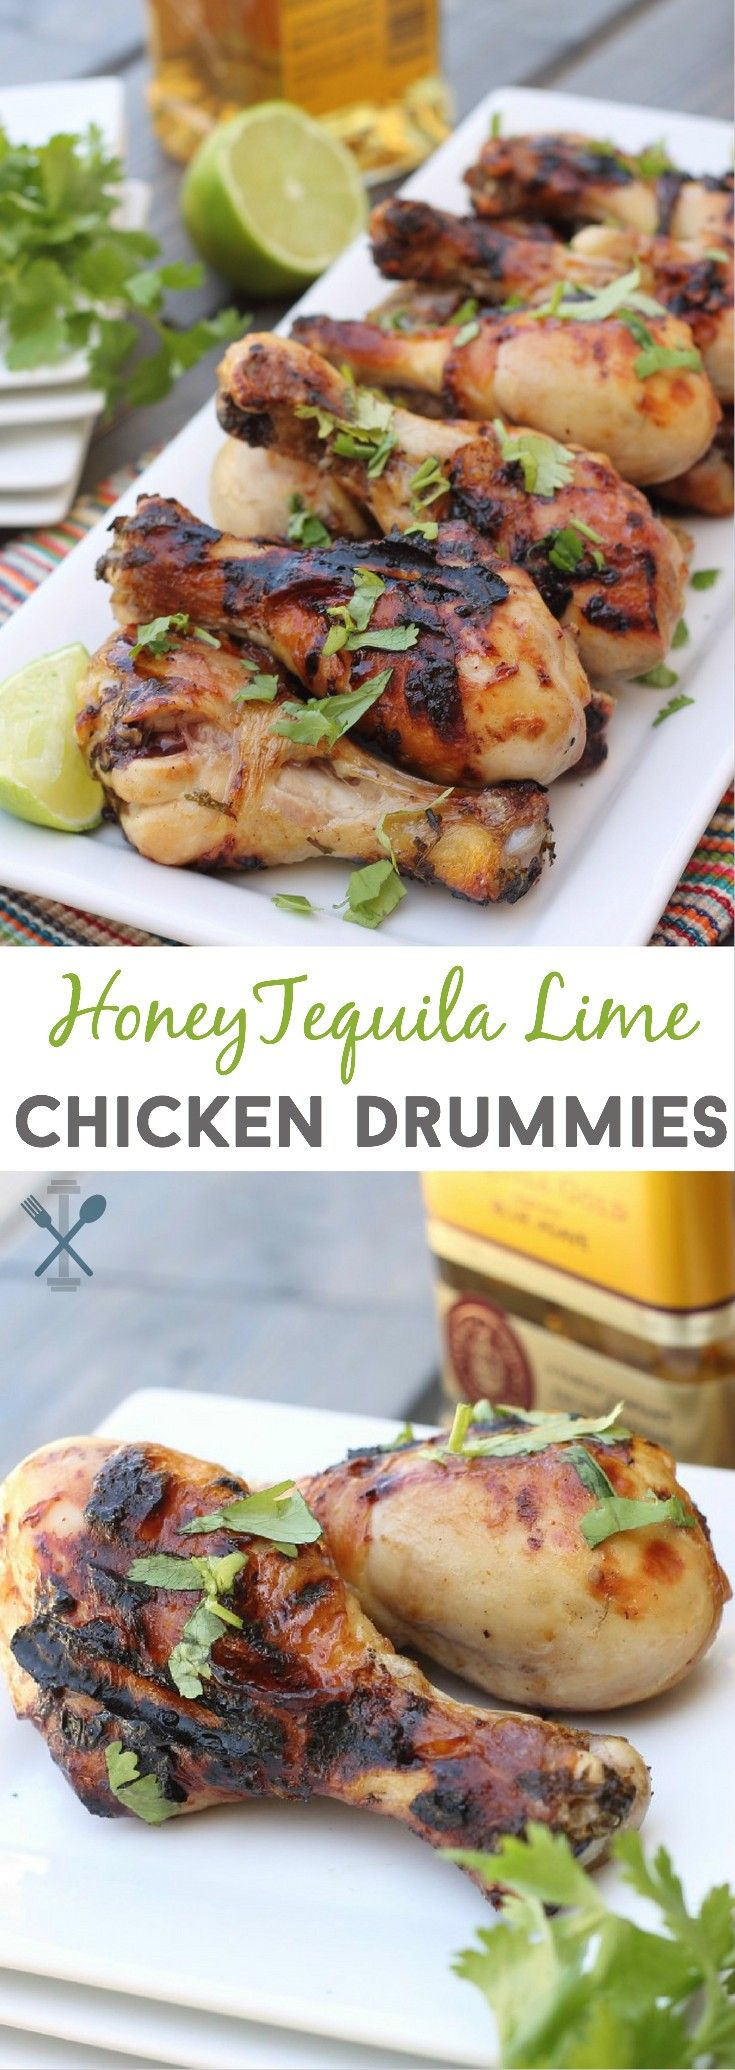 The ultimate football party snack. These honey tequila lime chicken drummies are…